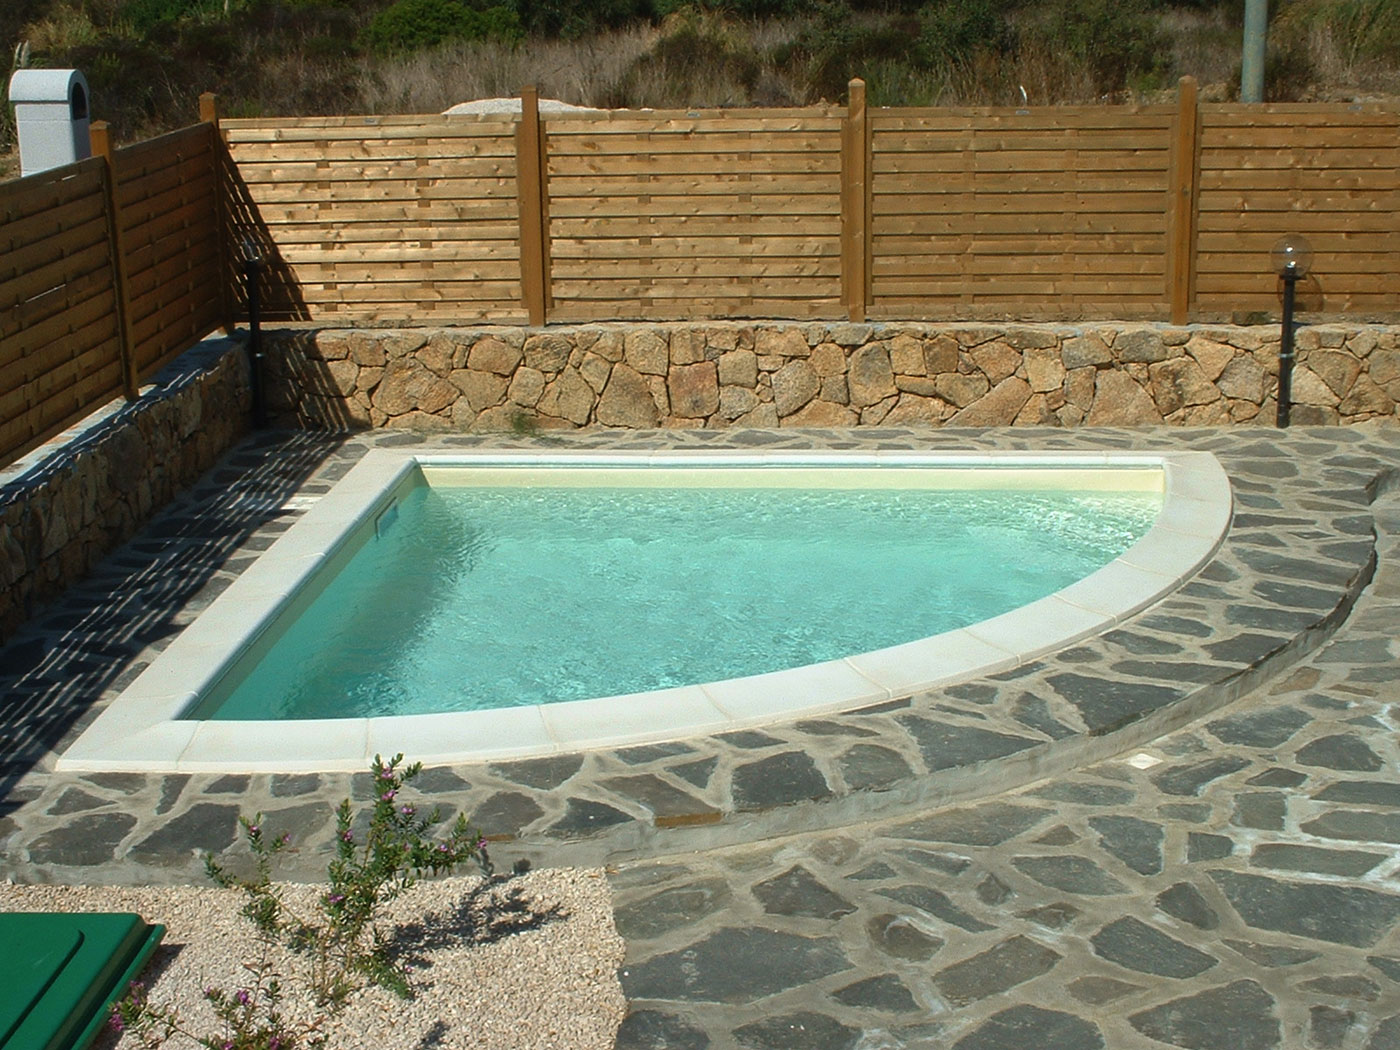 Dimension Piscine Non Imposable Piscine Interrate Piccole Dimensioni Jh38 Regardsdefemmes